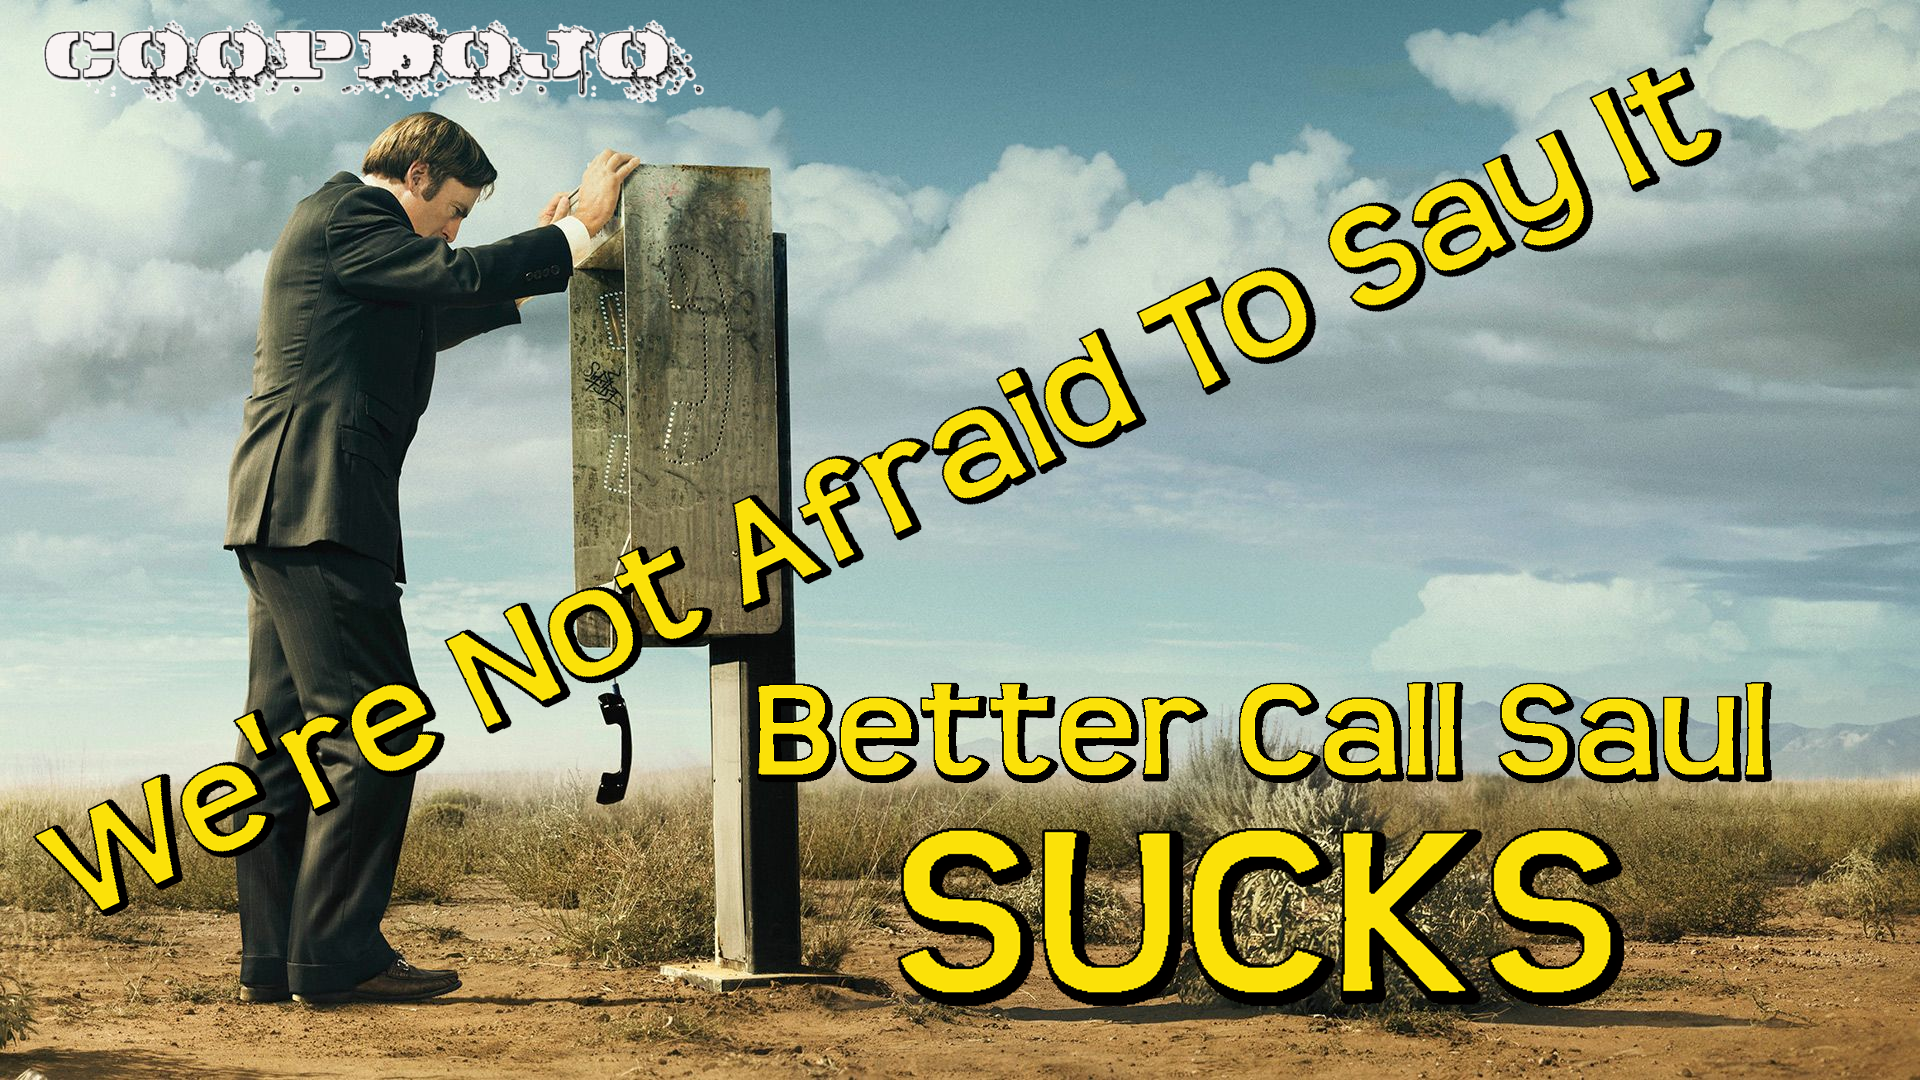 We're Not Afraid To Say It: Better Call Saul Sucks